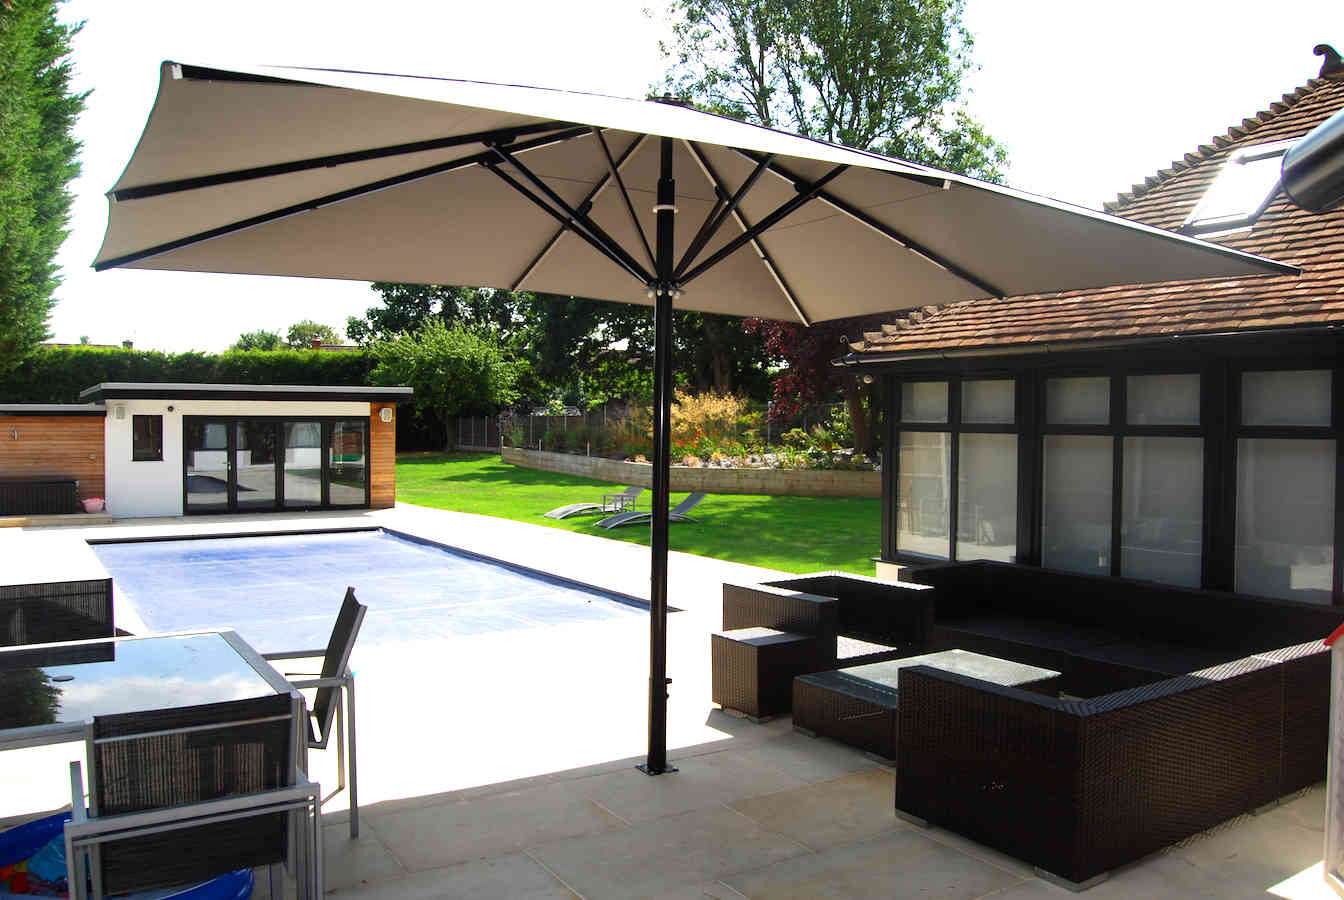 Awning & Giant Parasol – Private Dwelling – Loughton